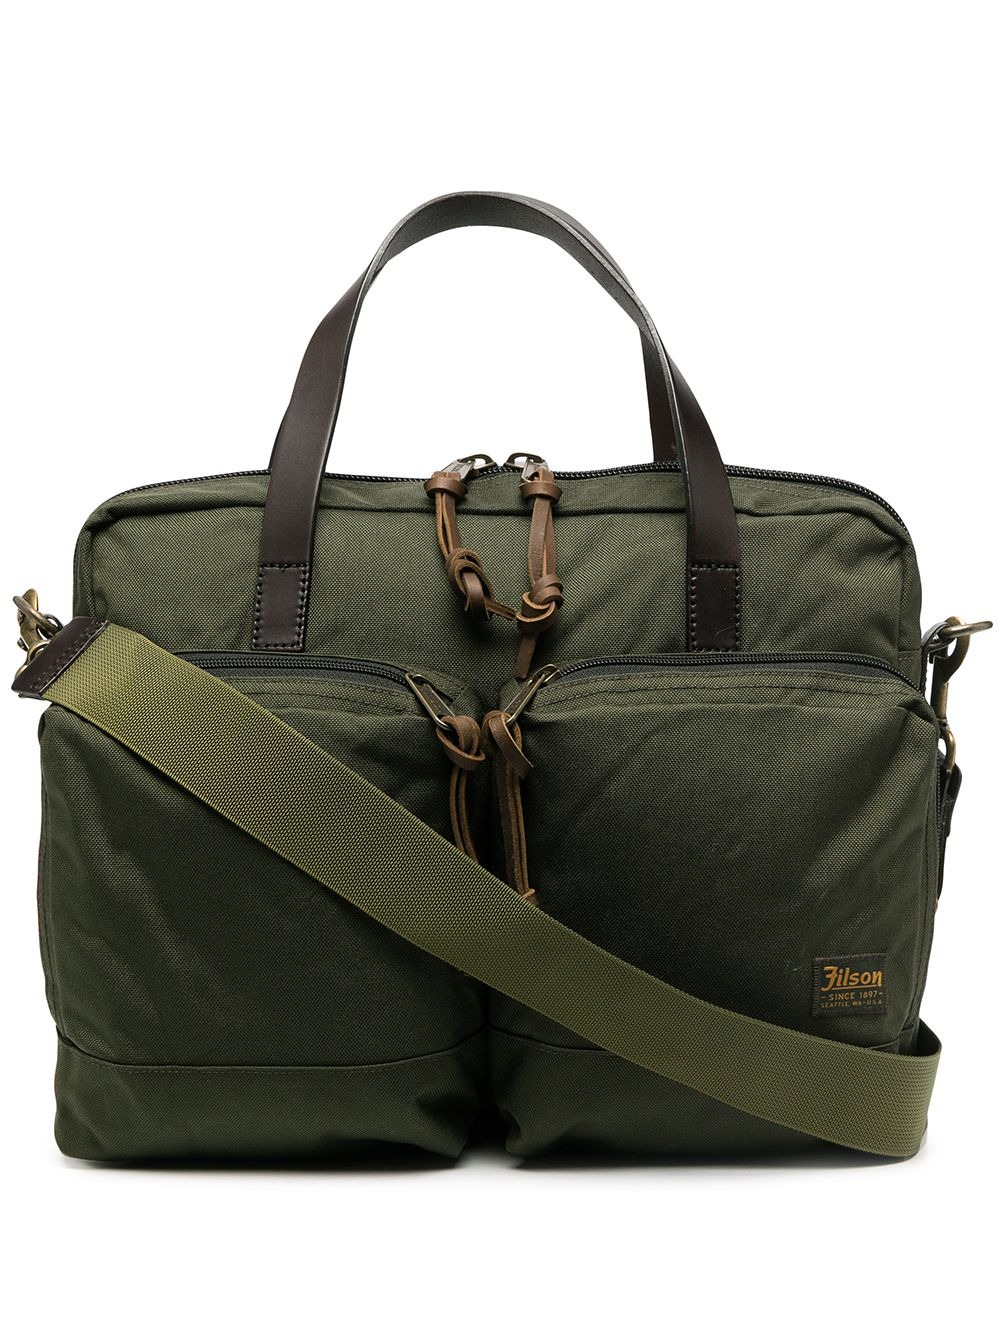 Filson-dryden-logo-patch-briefcase